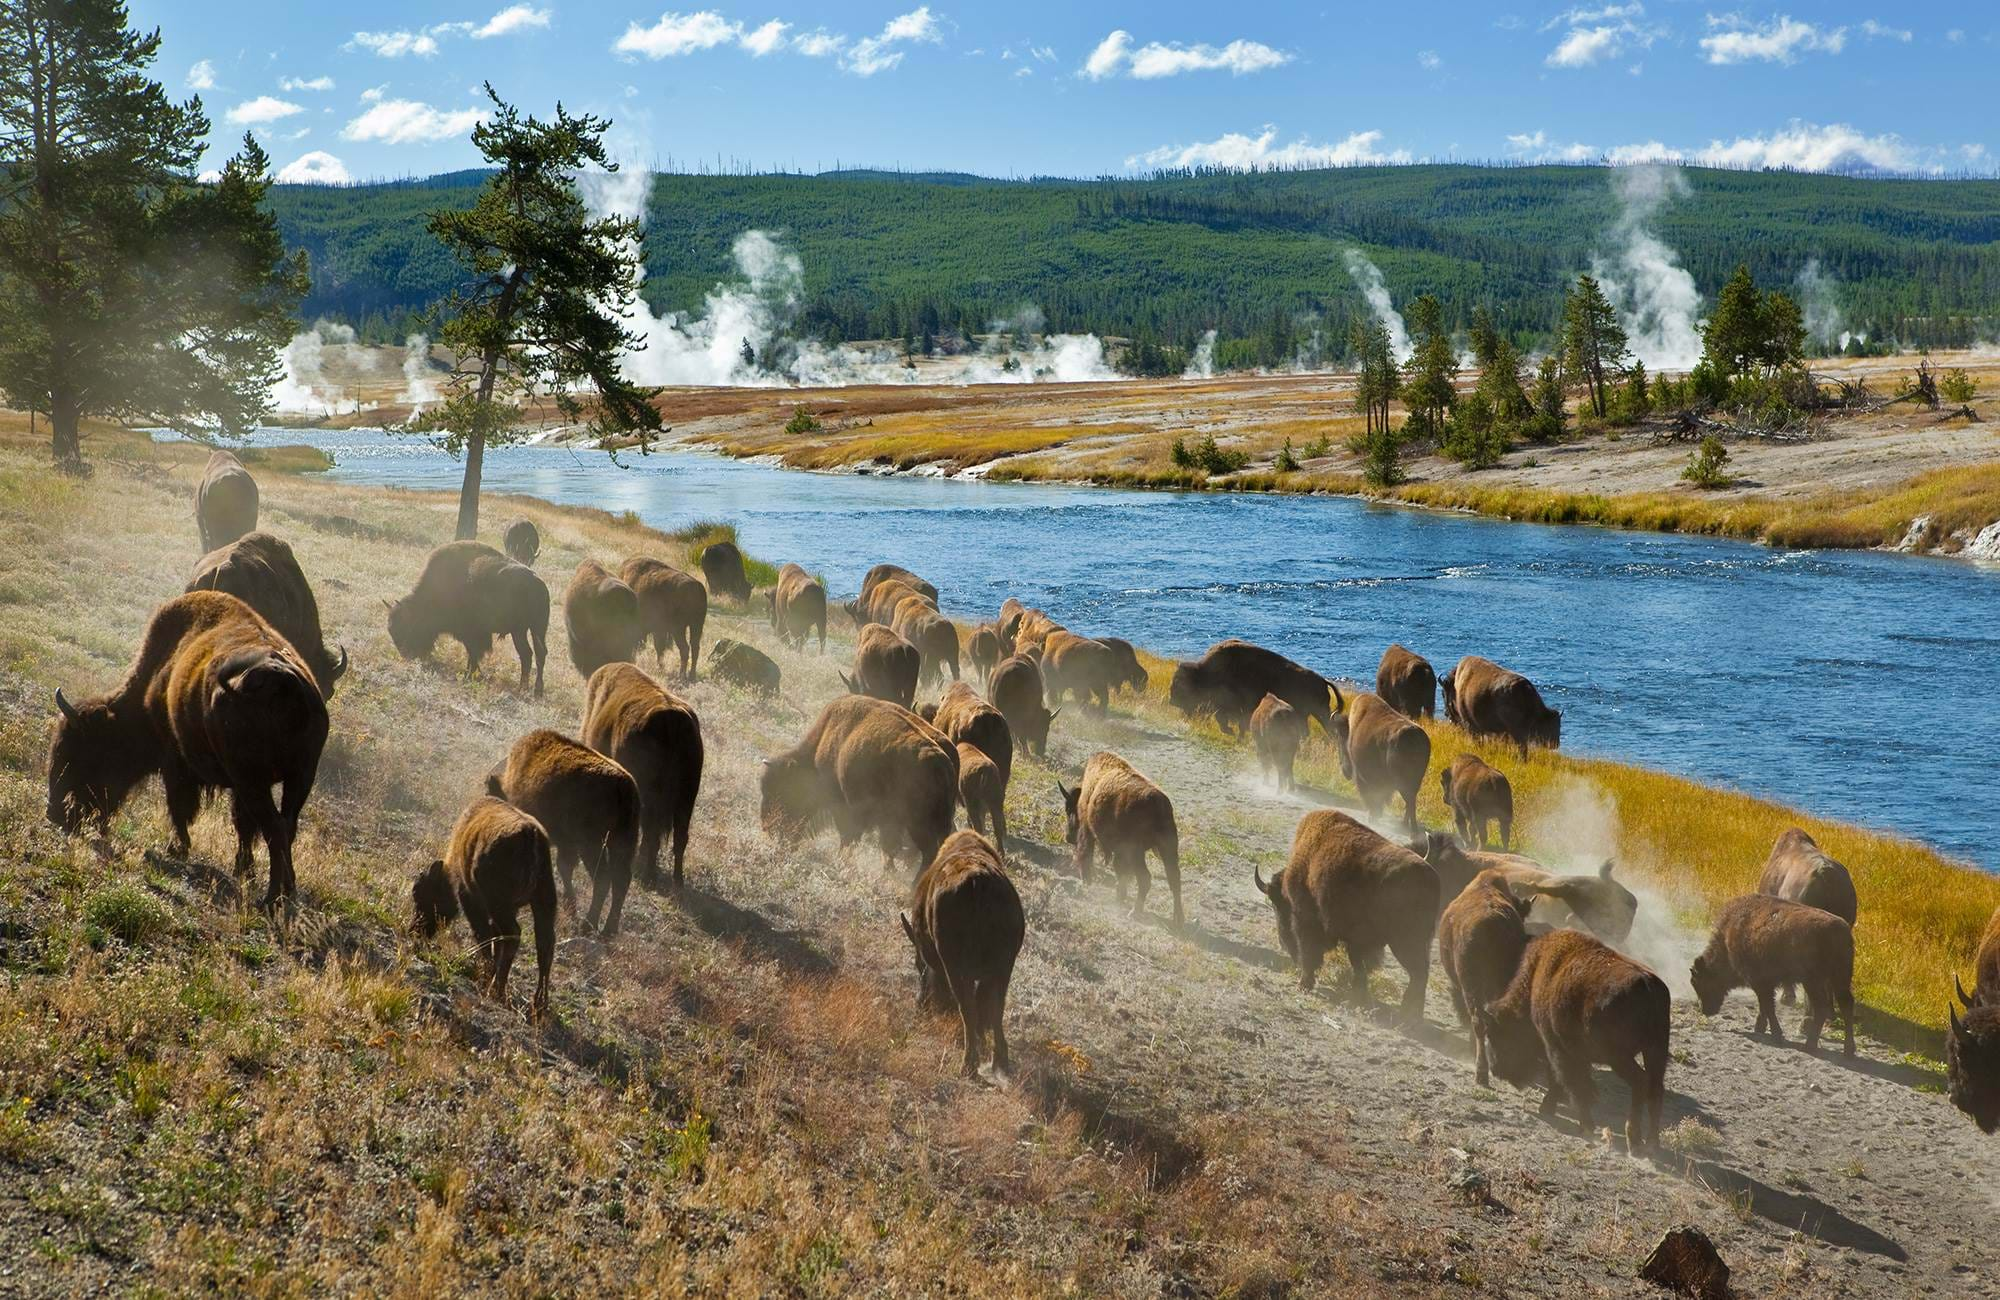 yellowstone-national-park-bison-herd-cover